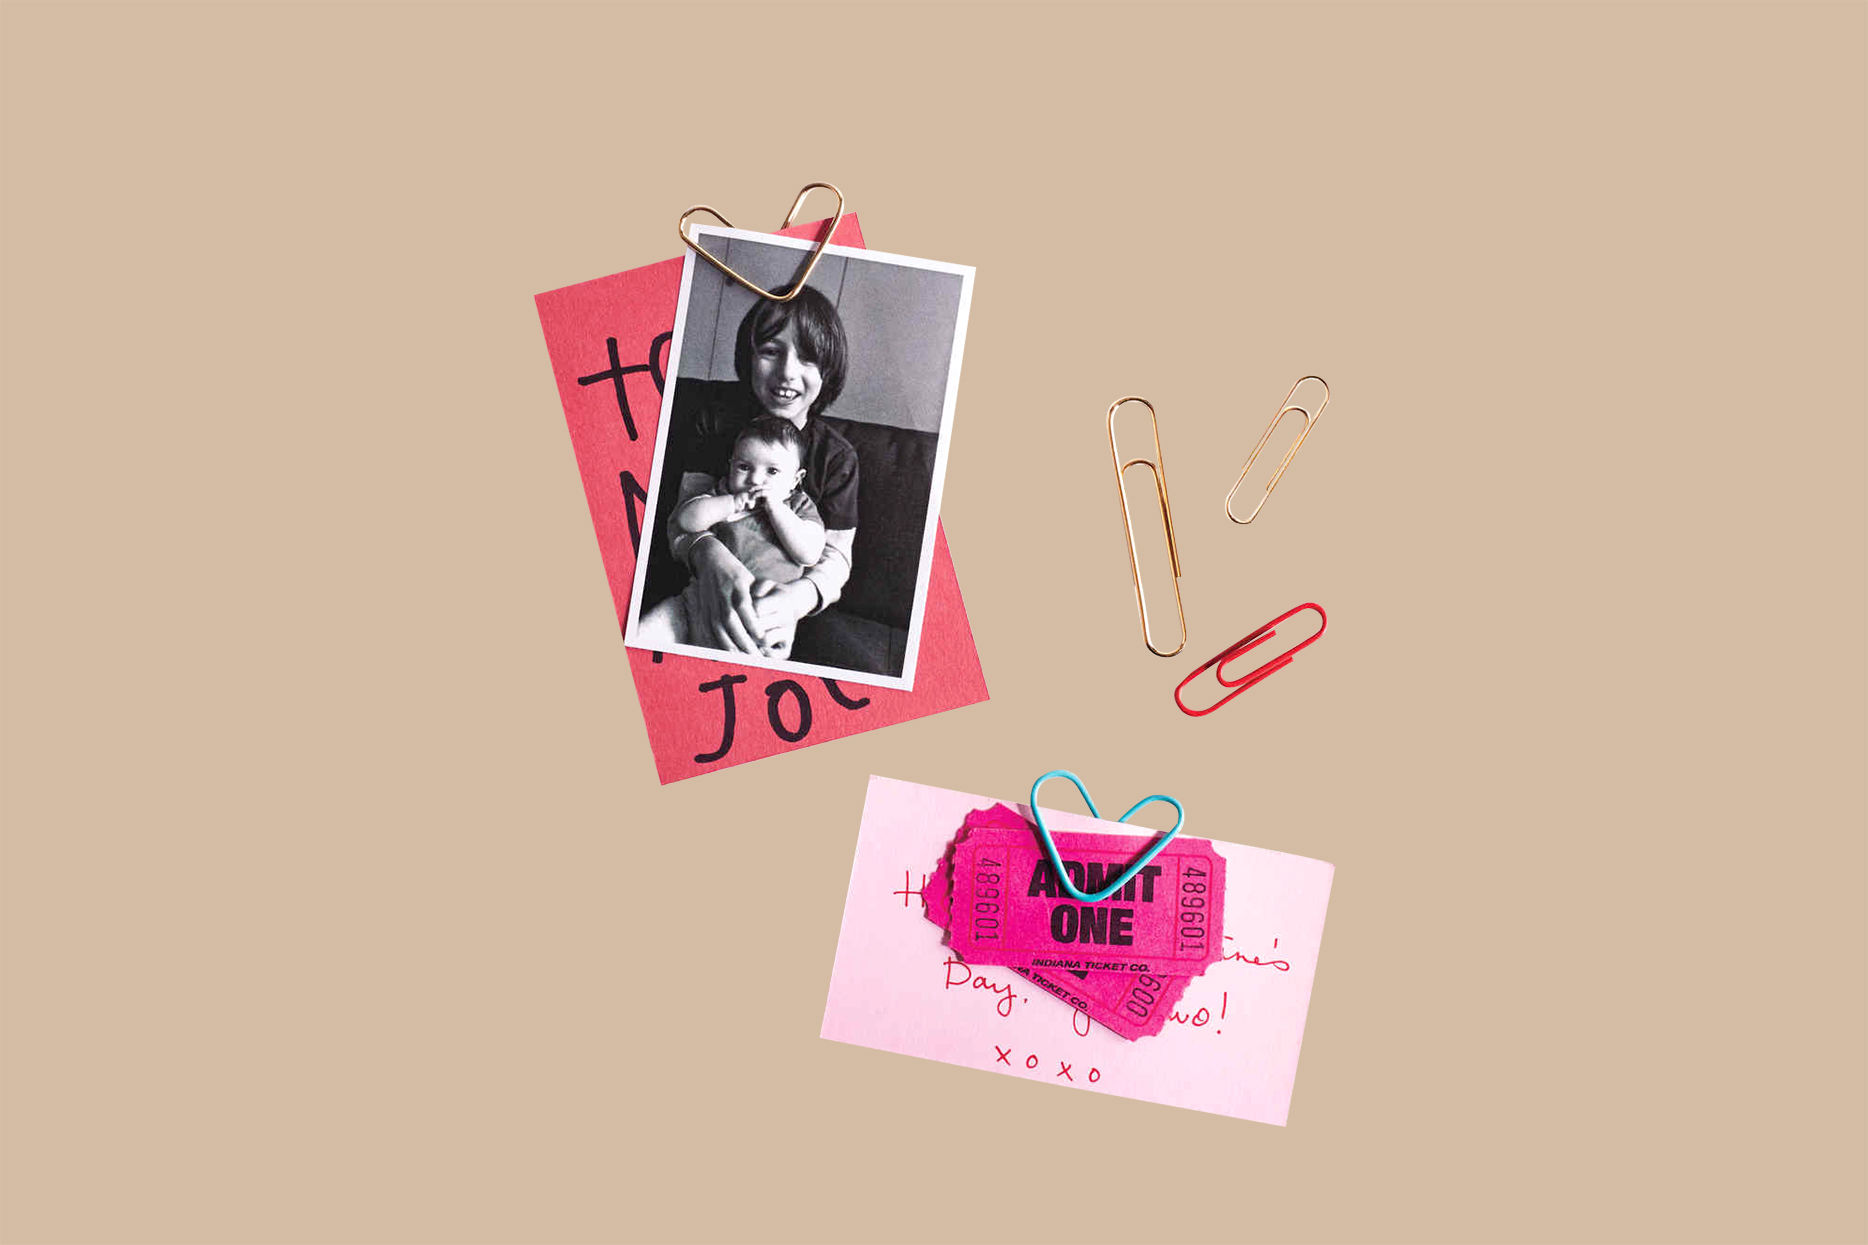 paper-clip valentines with photo, tickets and notes